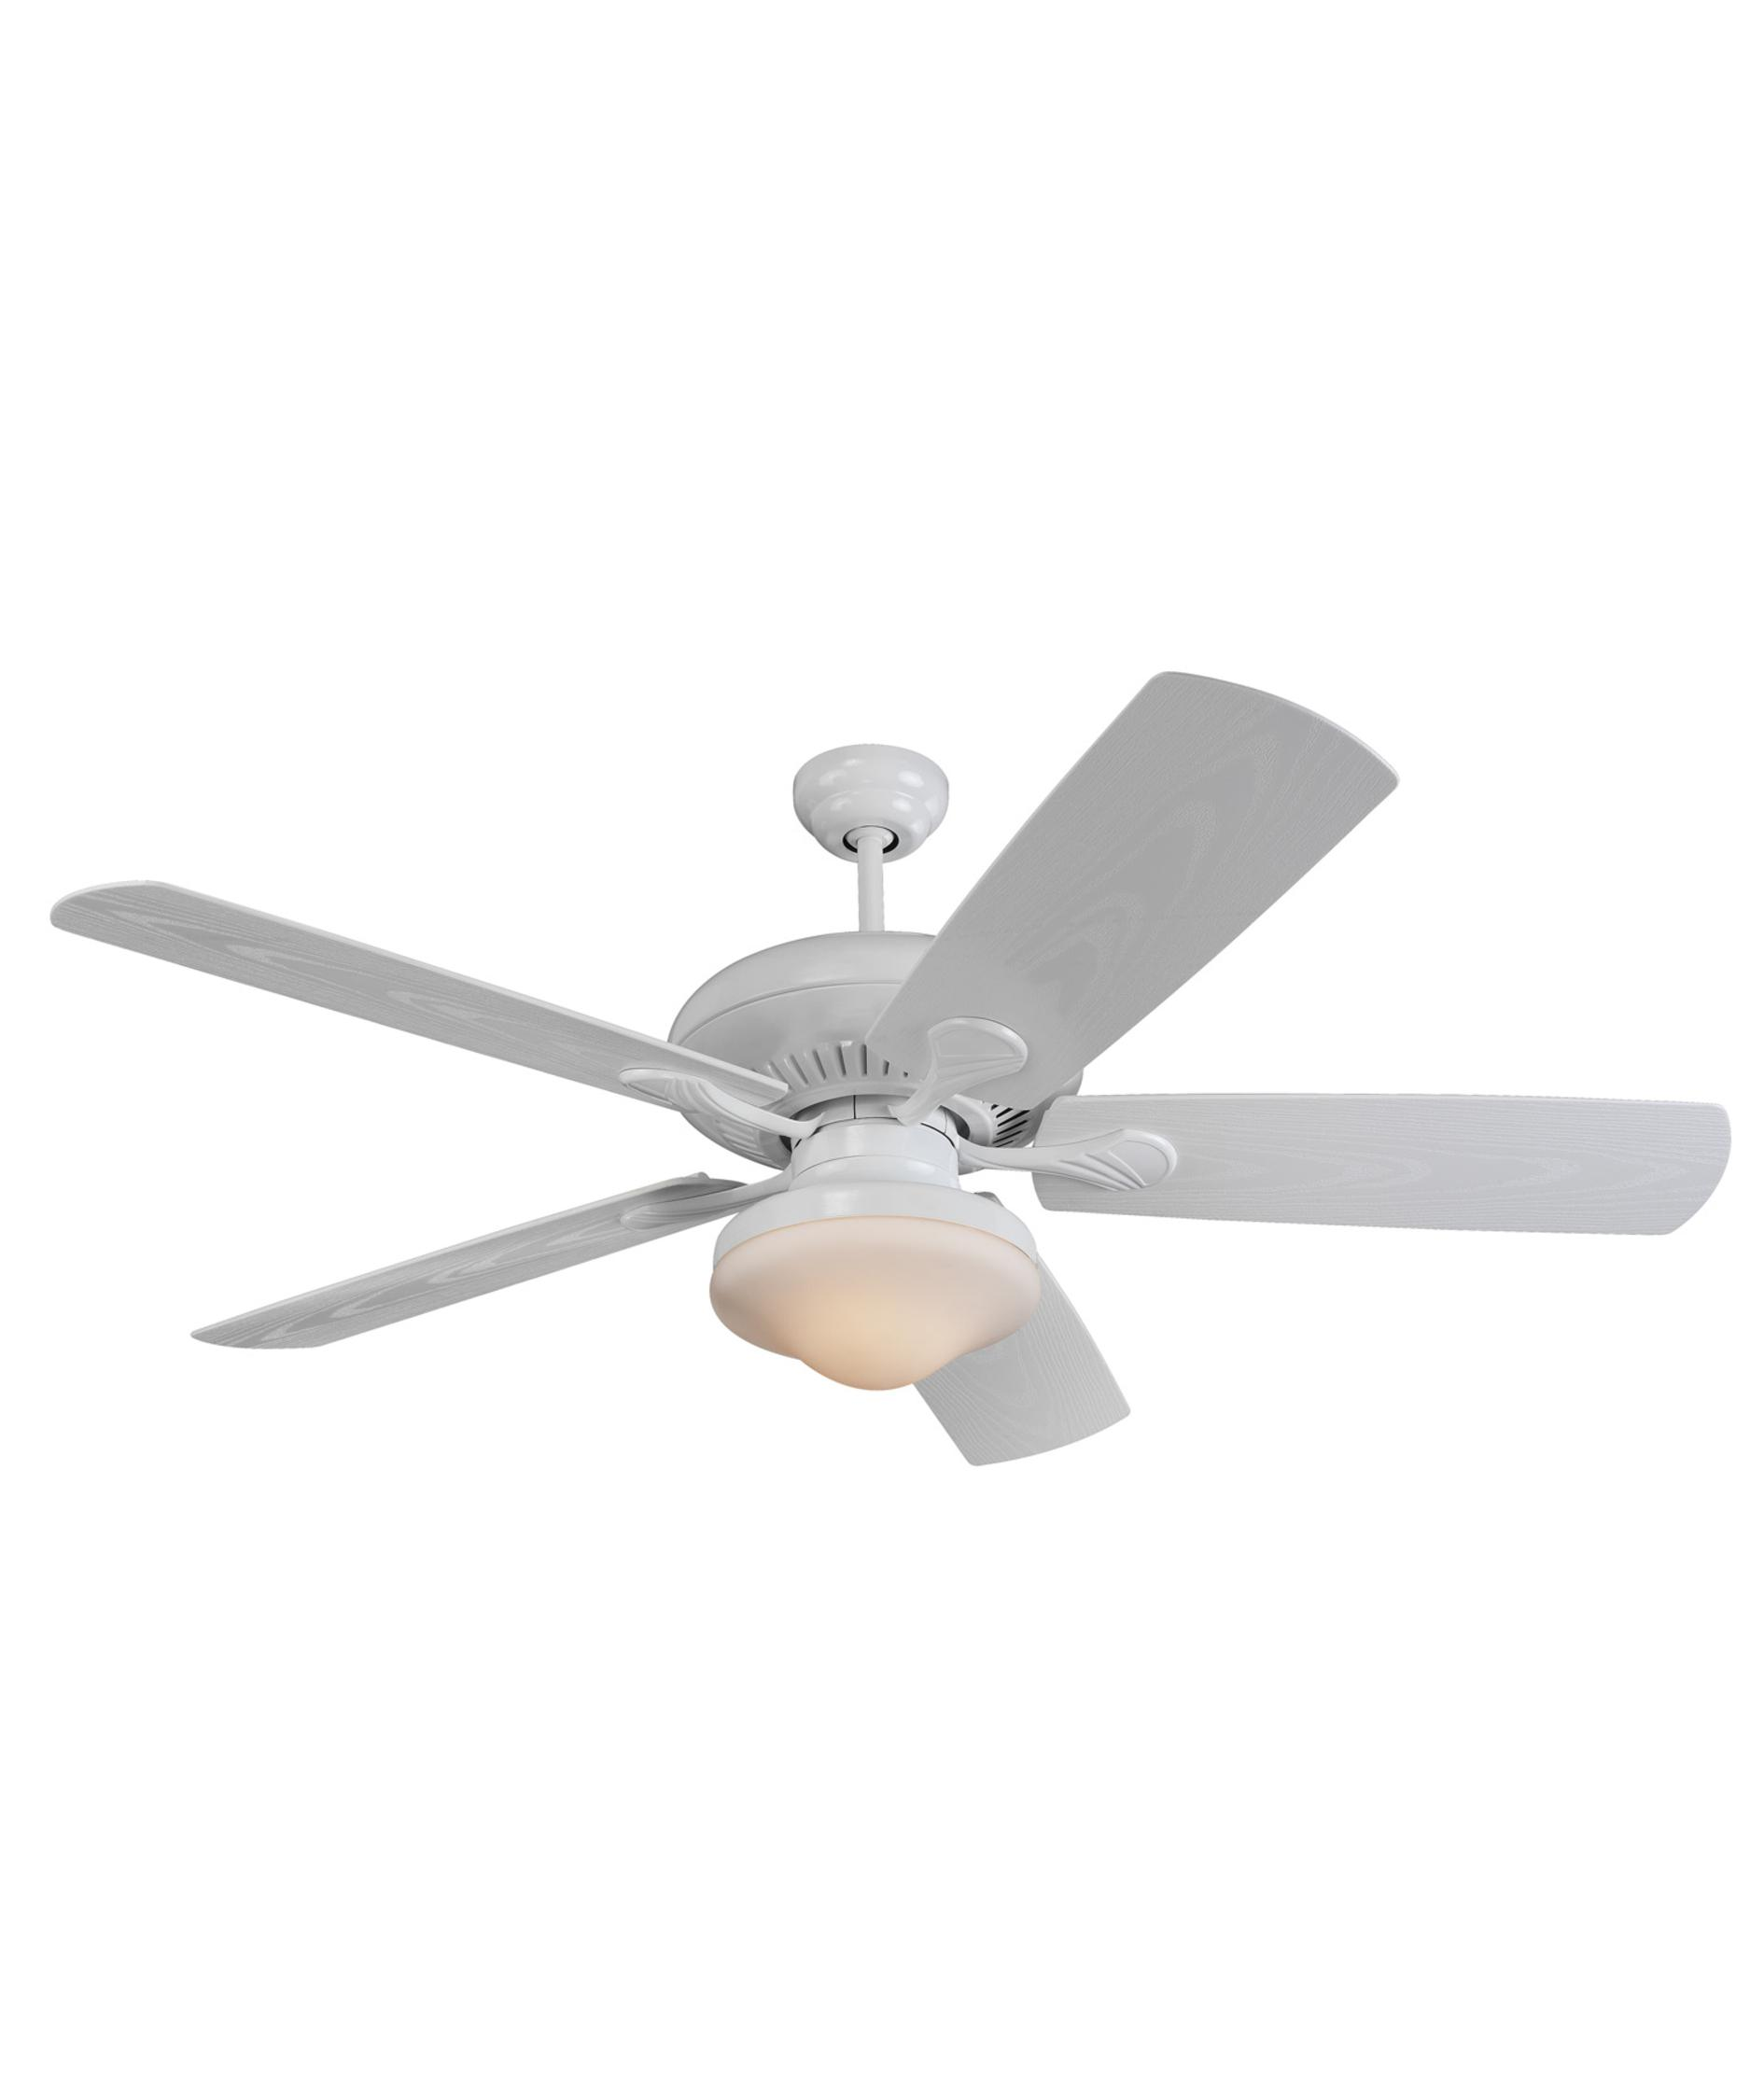 Murray Feiss Ceiling Fan Light Kit: Monte Carlo 5SH54 Shores Energy Smart 54 Inch Ceiling Fan